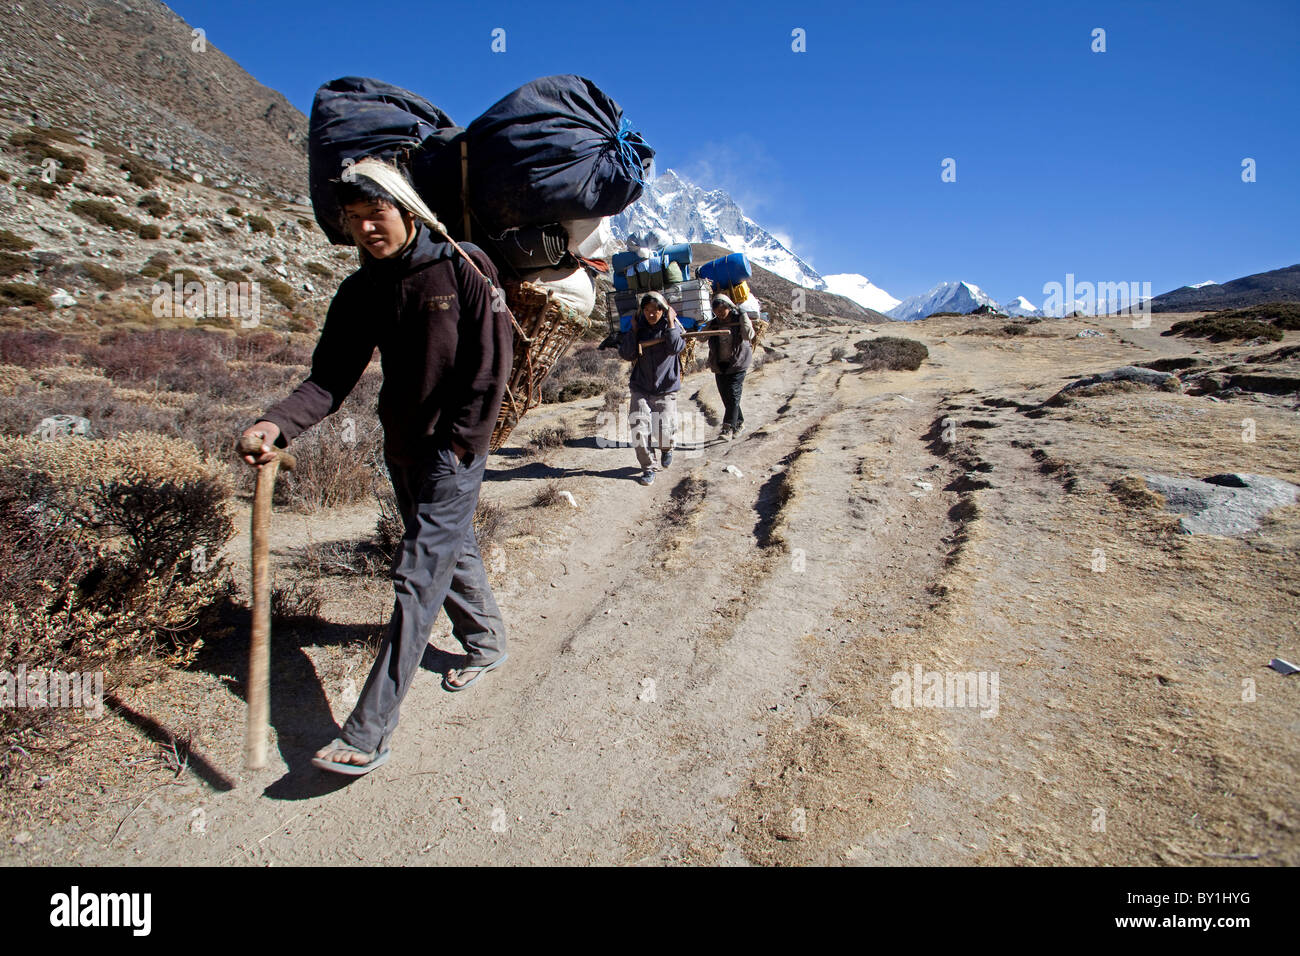 Nepal, Everest Region, Khumbu Valley. Heavily laden Nepalese porters on the Everest Base Trail decending with Island - Stock Image